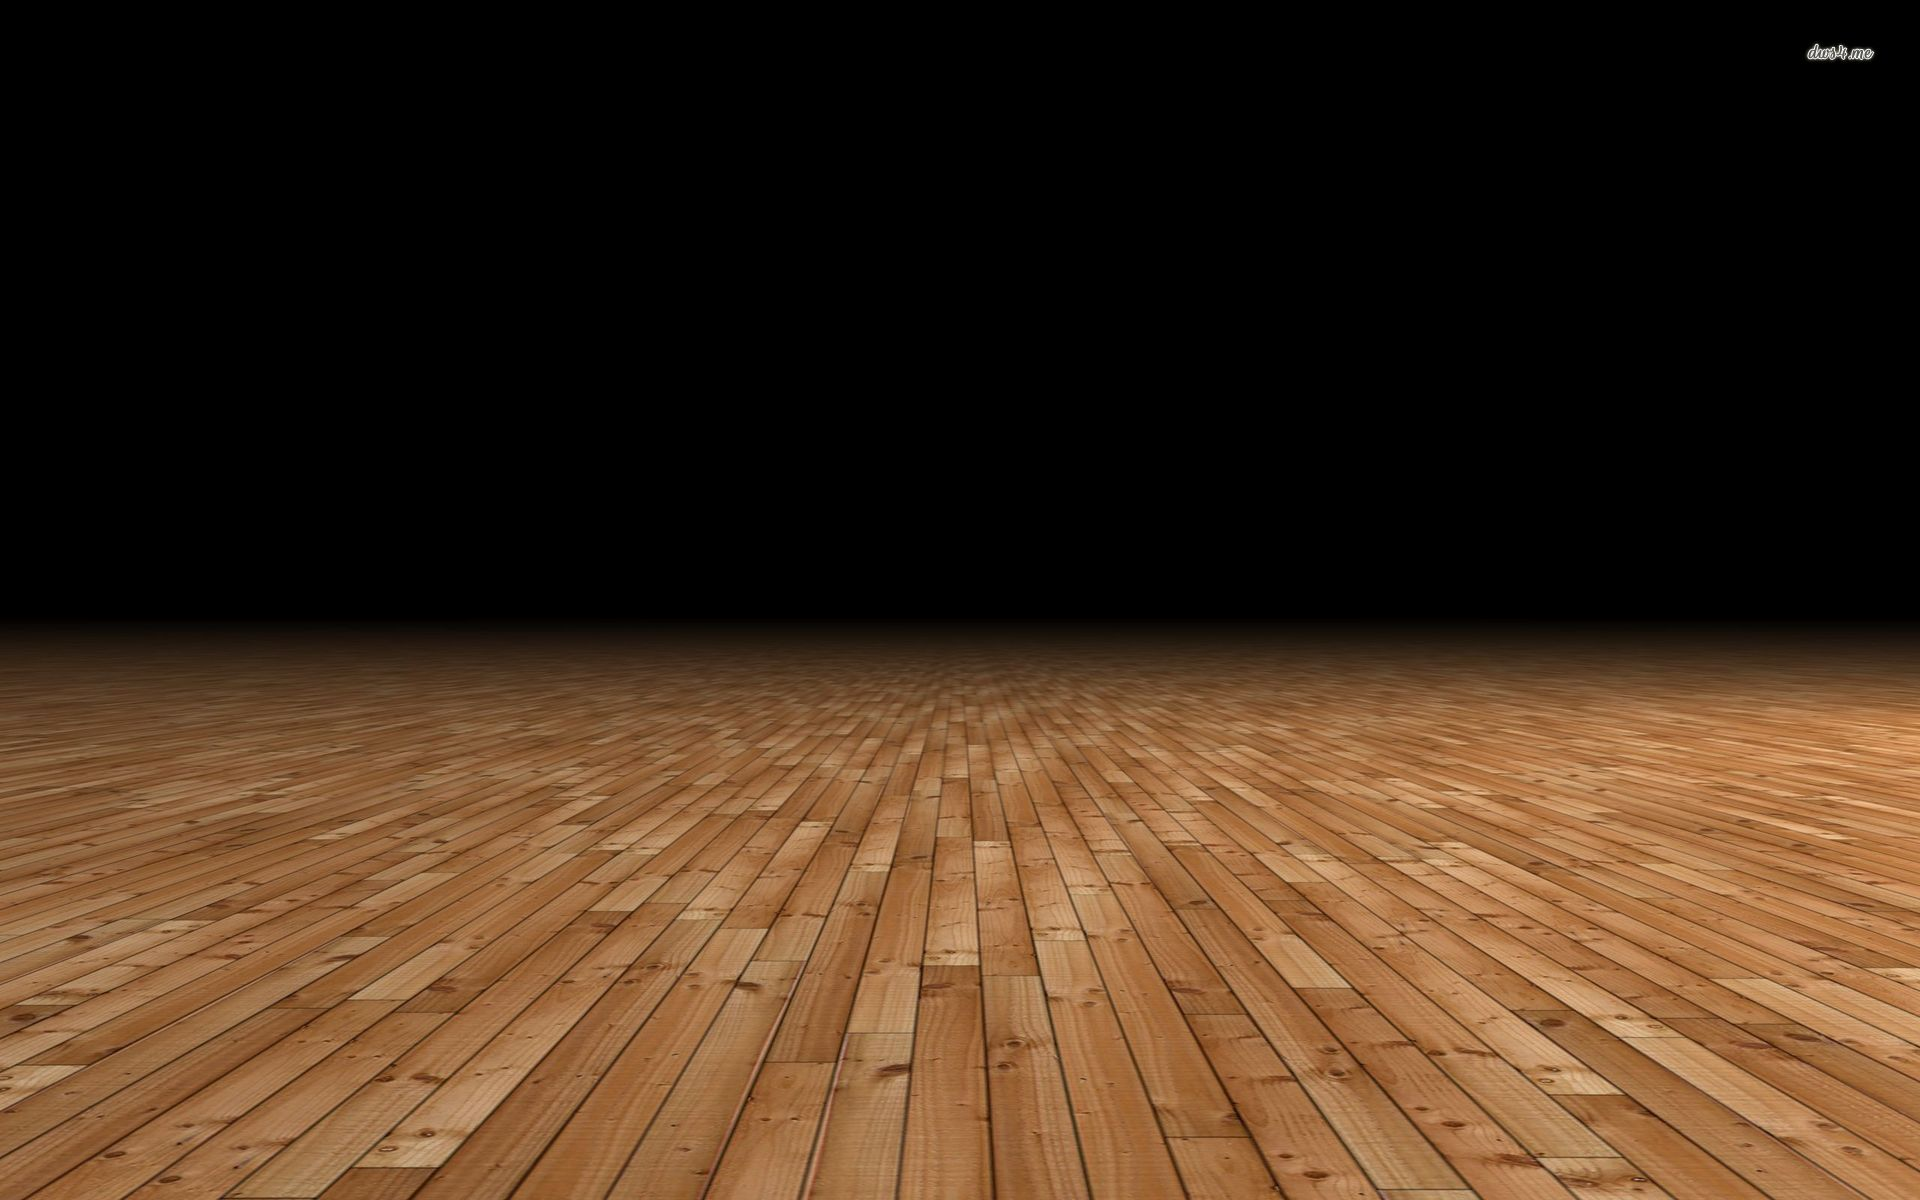 Wood Floor Png (107+ images in Collection) Page 1.